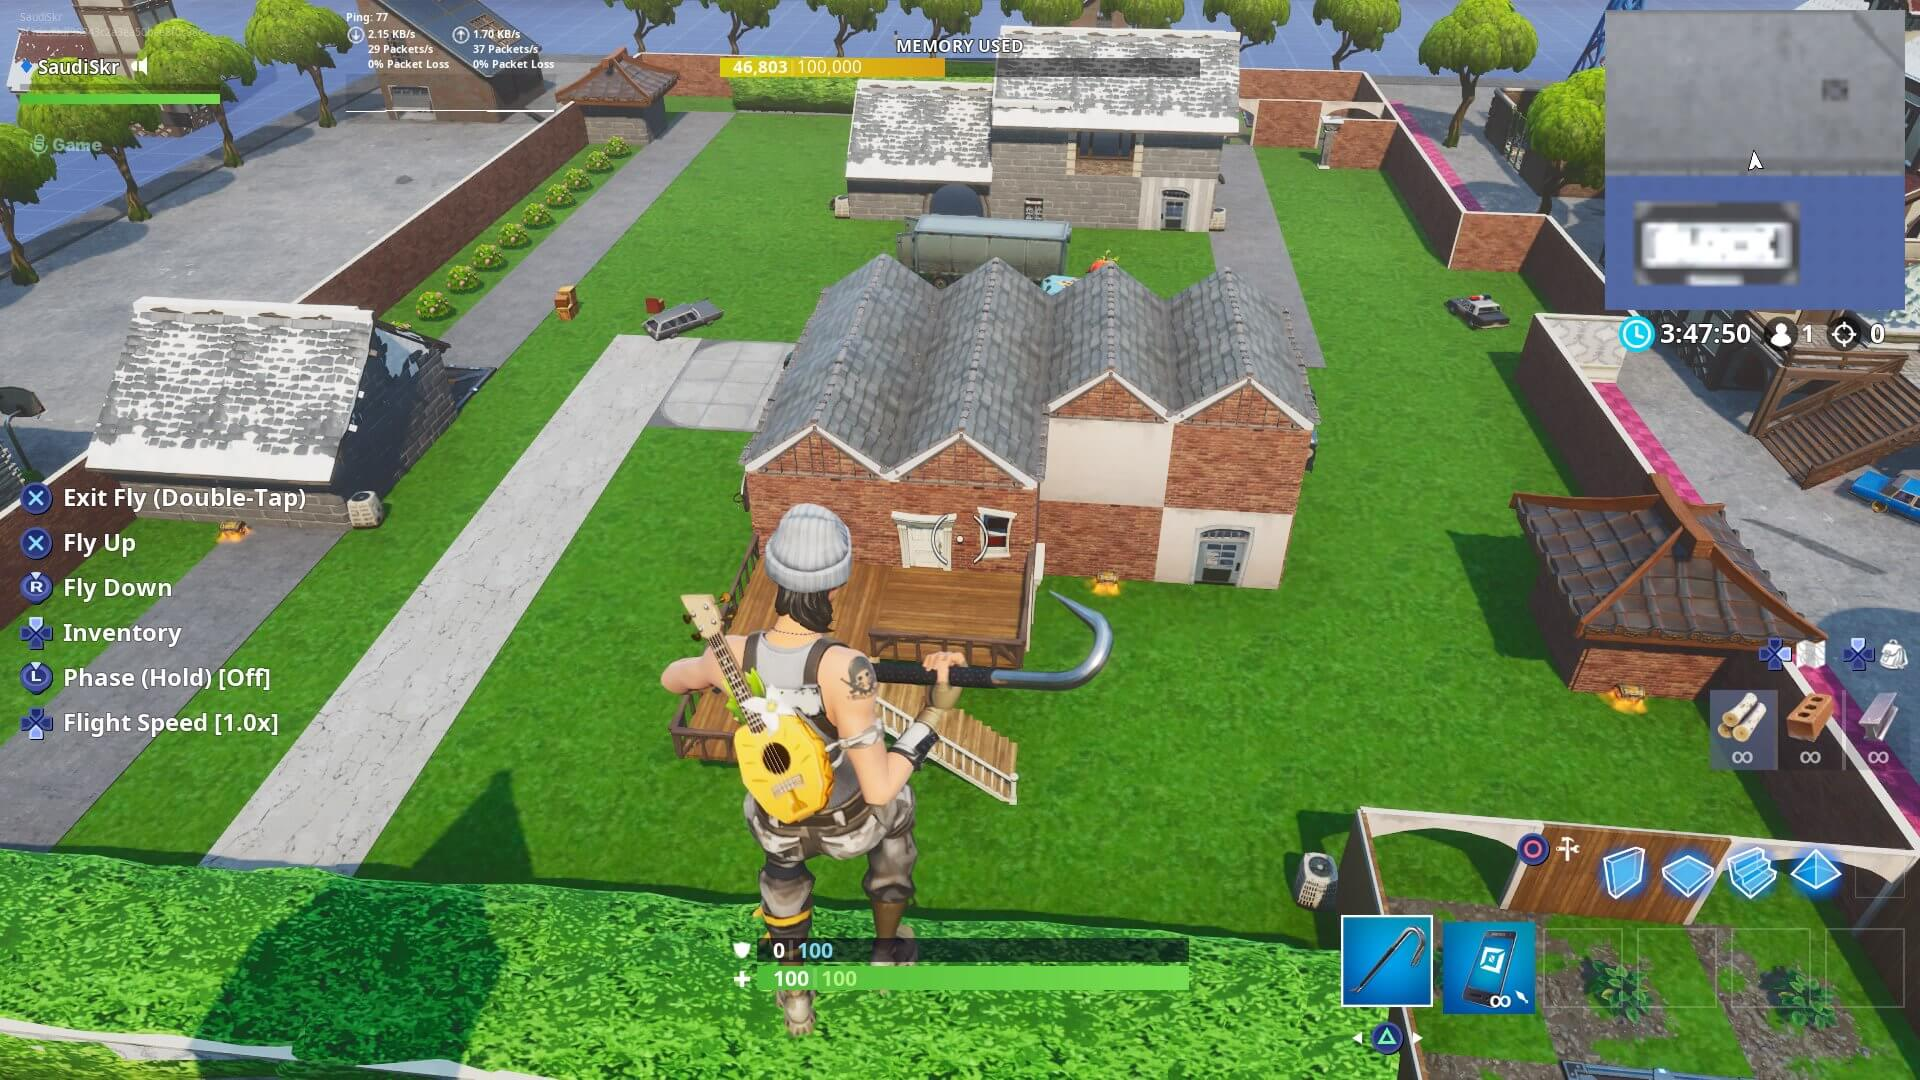 NUKETOWN: FREE FOR ALL